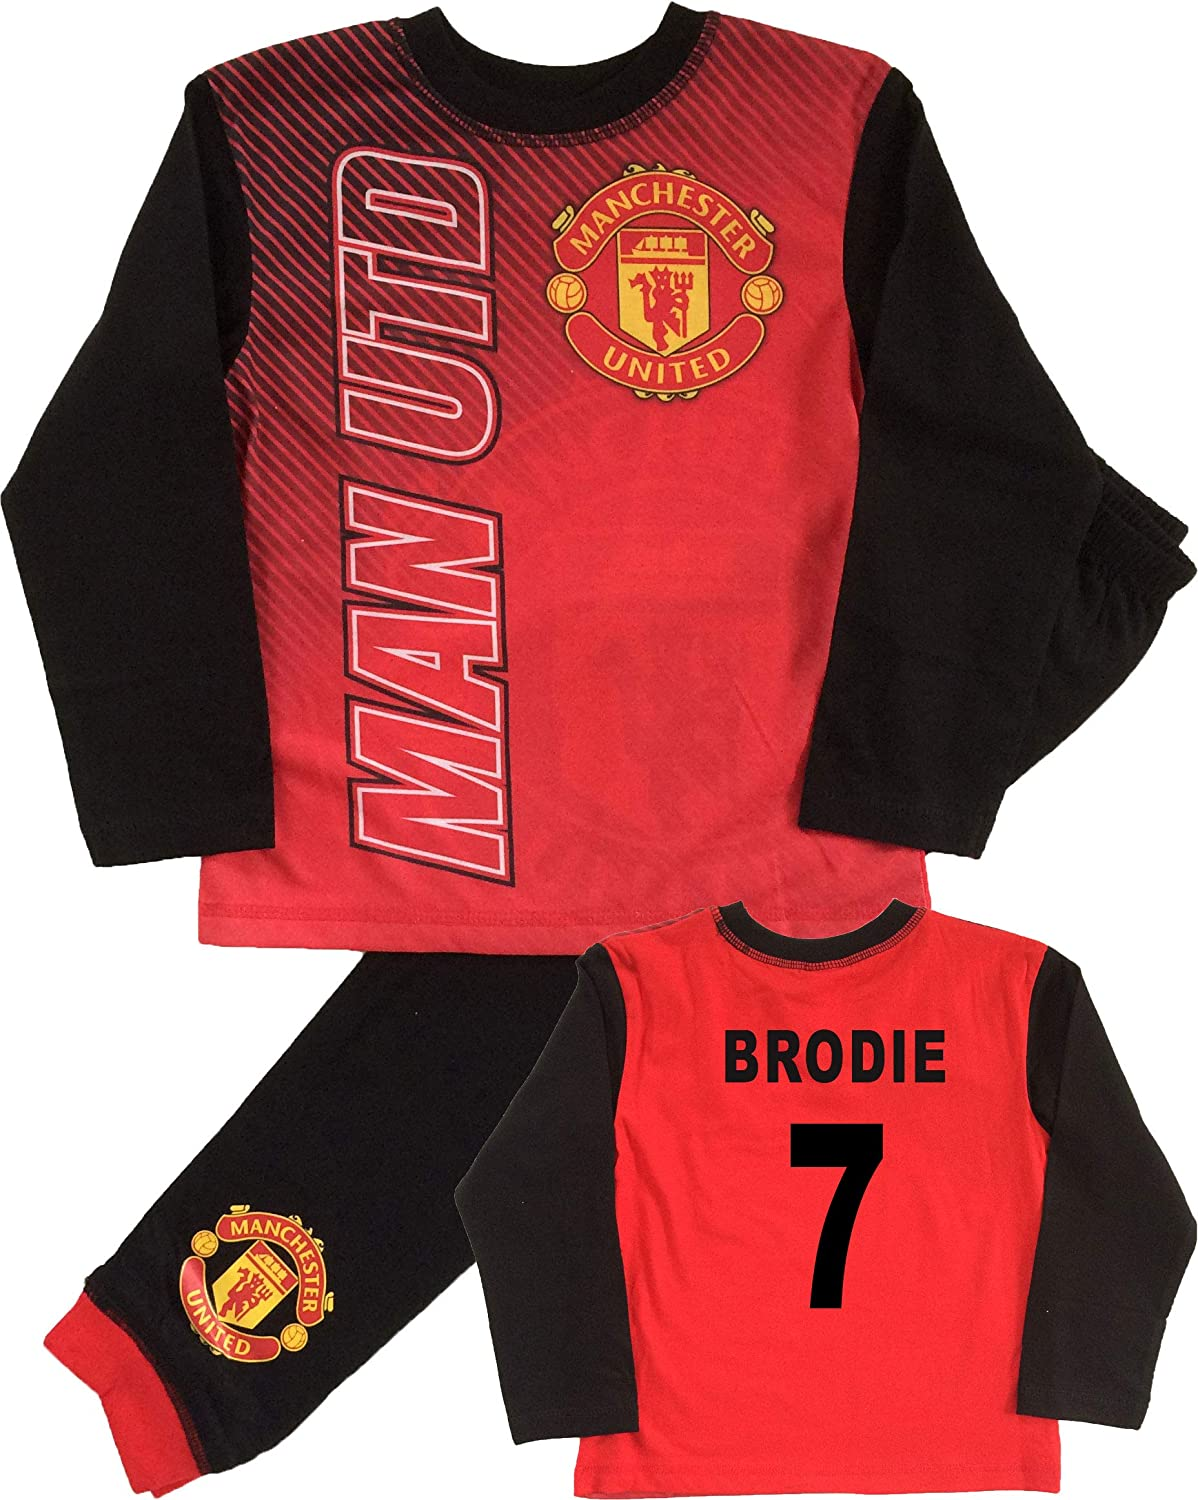 Jim Jams Kids Manchester United Football Club Personalised Pyjamas Ages 4 to 12 Years